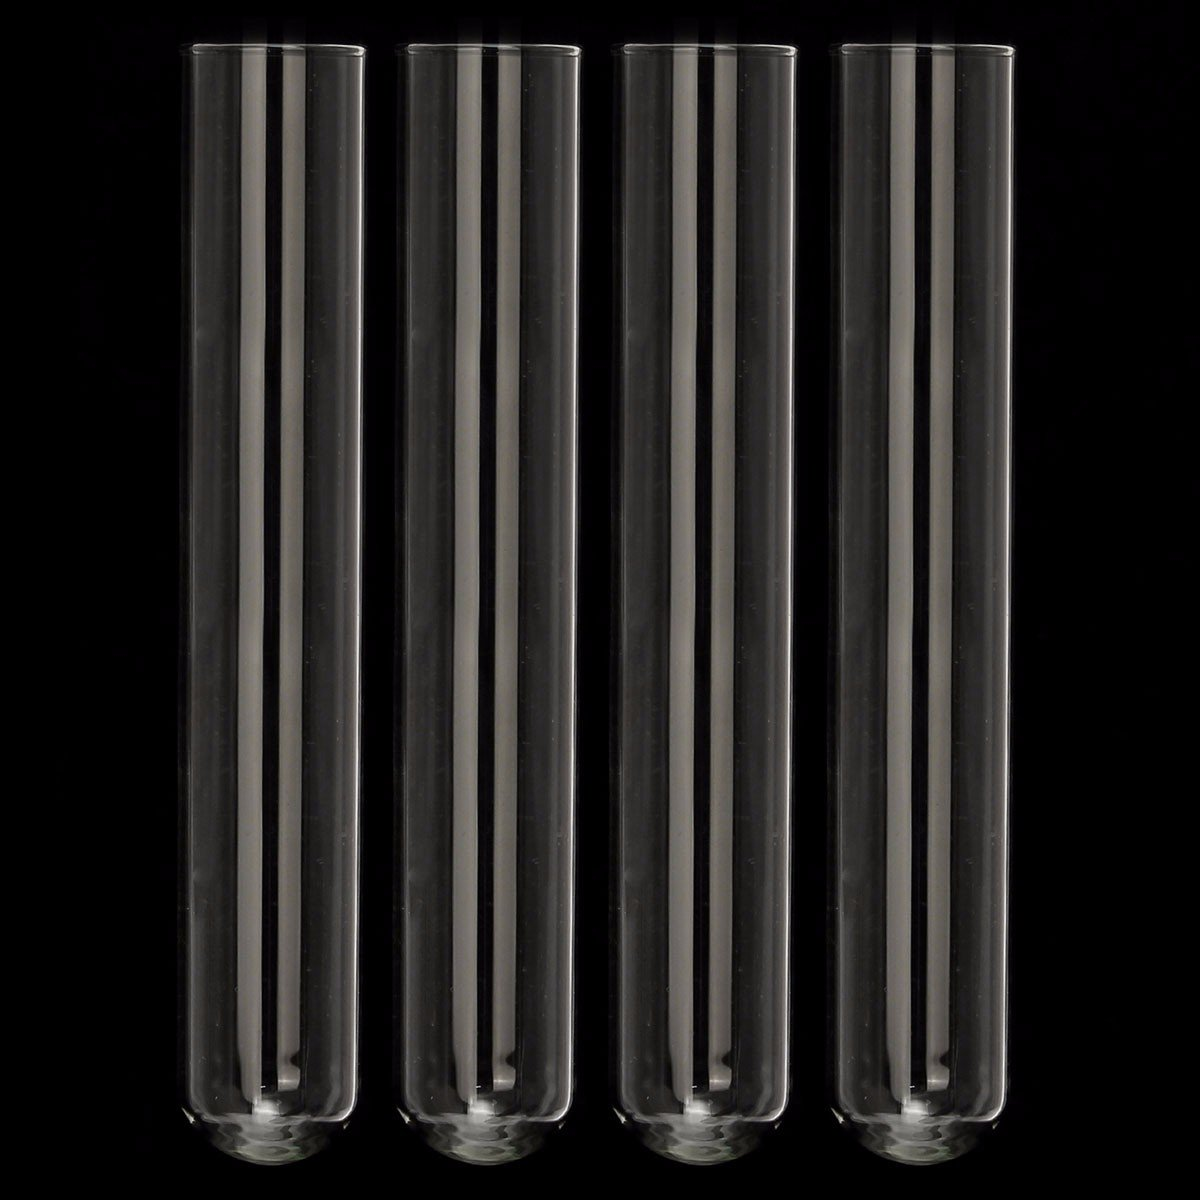 4pcs of pack Pyrex Glass Blowing Tubes Laboratory Test Tube150mm 24444